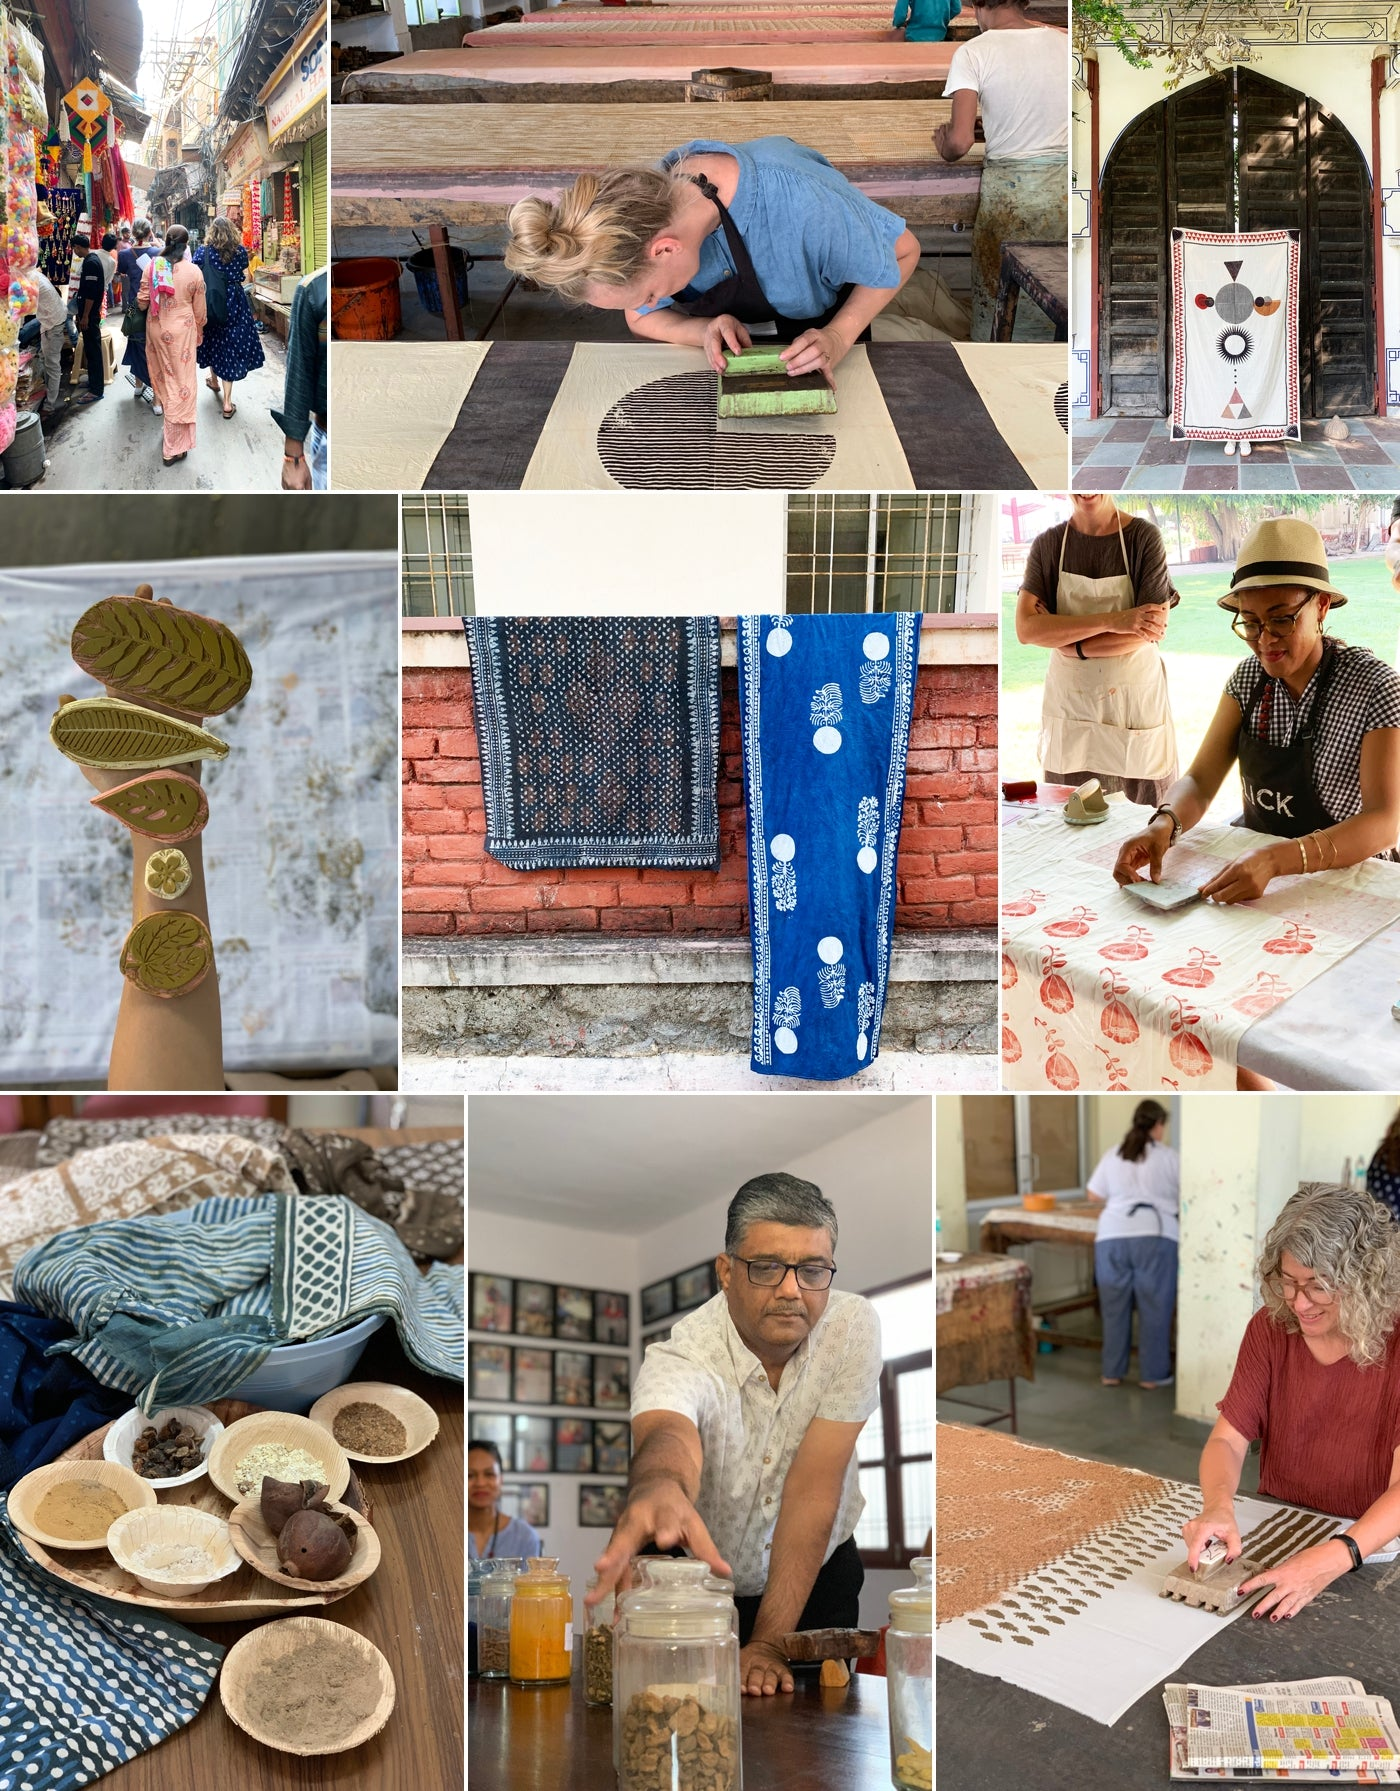 Blog Collage of Jaime and Amber 2019 trip to India.  These photographs range from showing fabric up close with stamping tools to make patterns on fabric, raw fabric dying materials and images of Amber and Jaime stamping material.